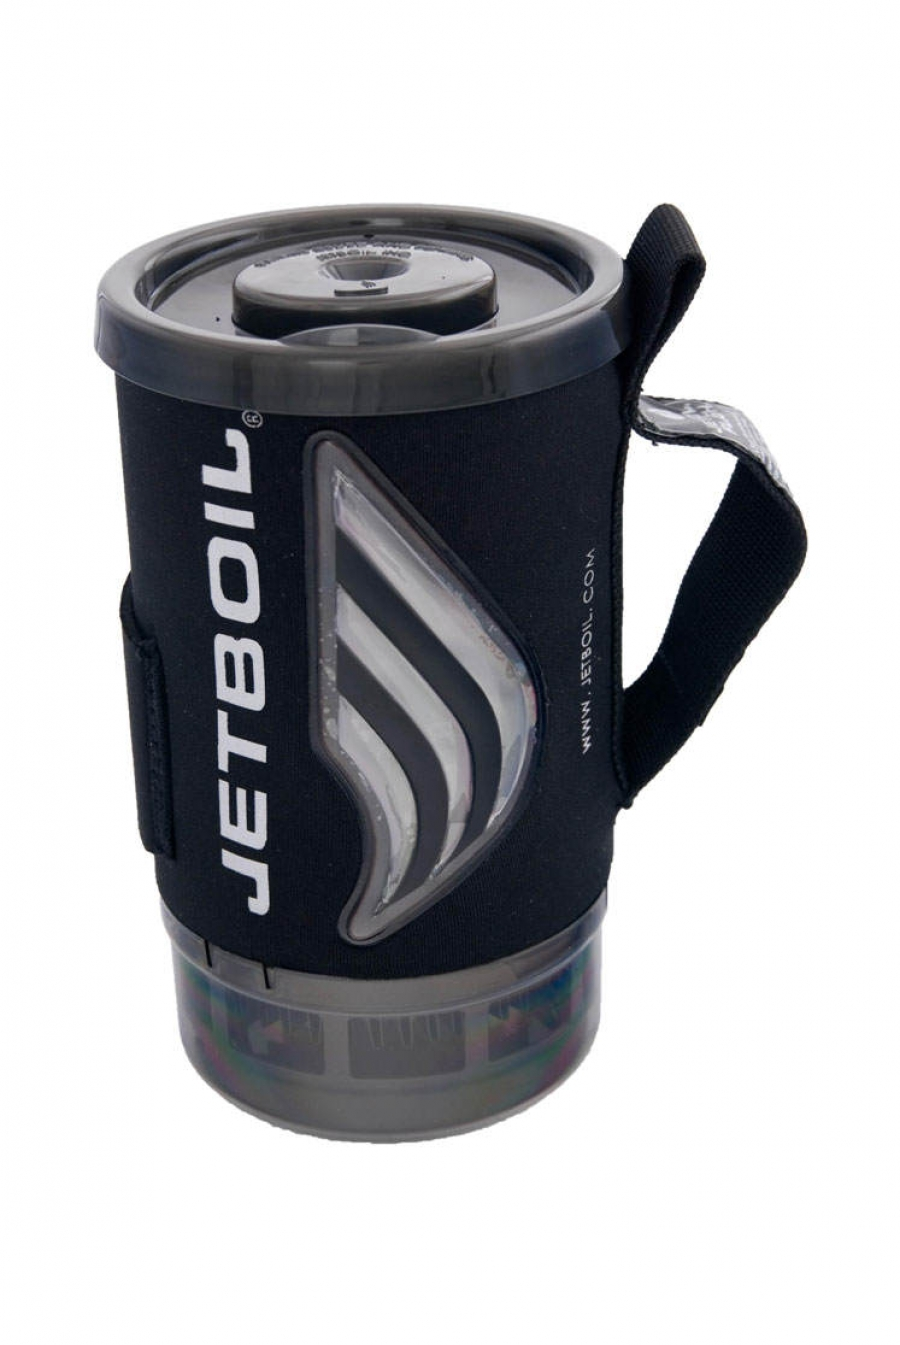 Jetboil Flash Reviewed